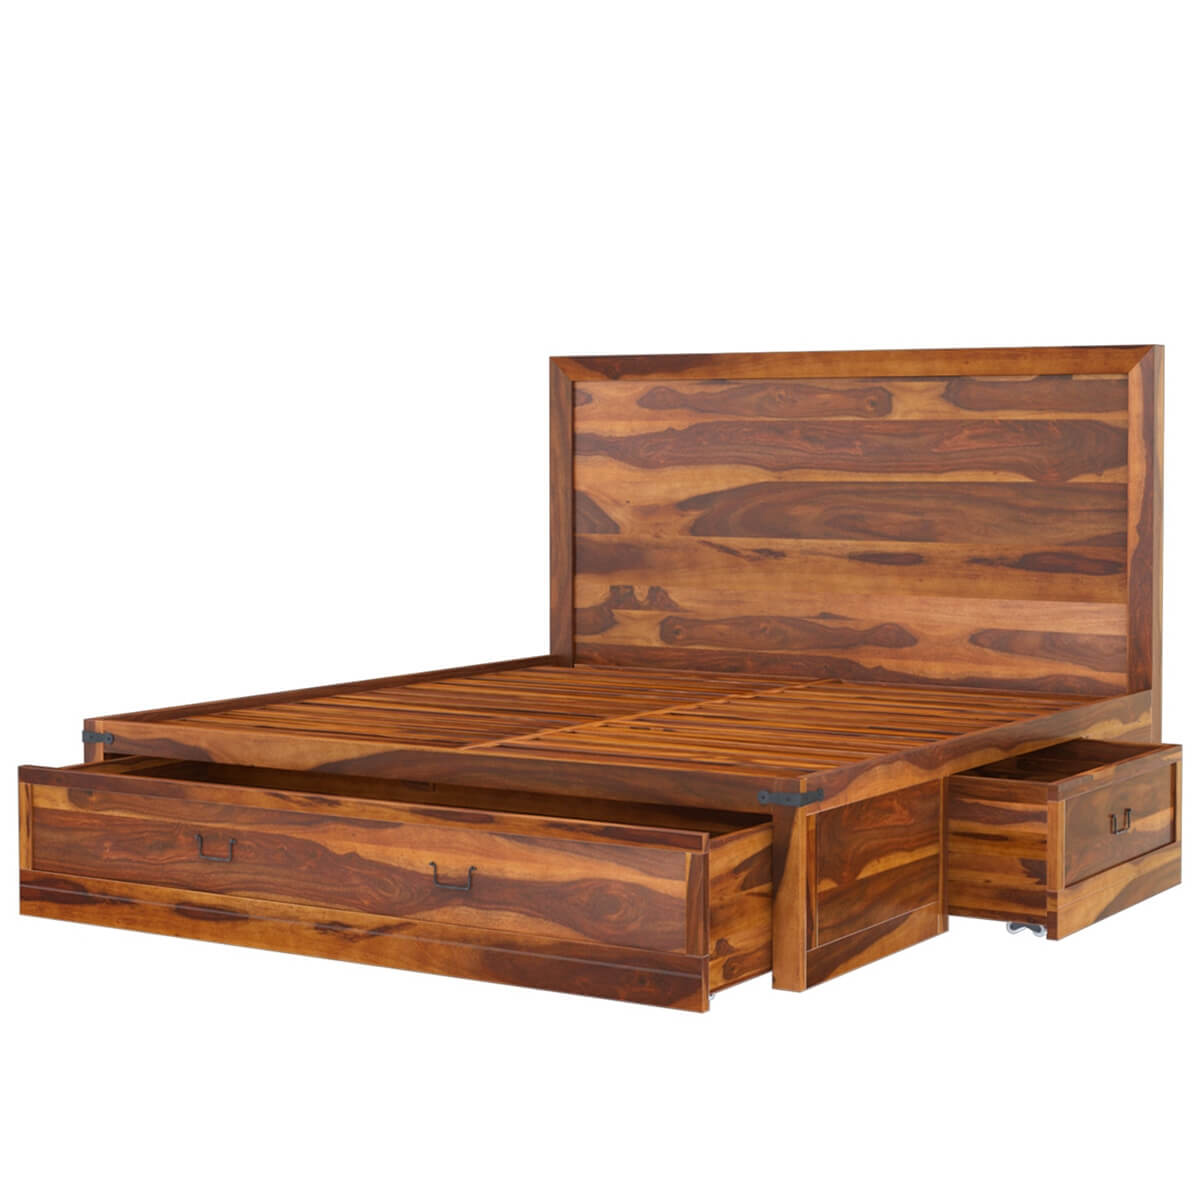 Superb img of Classic Shaker Solid Wood Platform Captain's Bed w 2 End Tables with #B28C19 color and 1200x1200 pixels